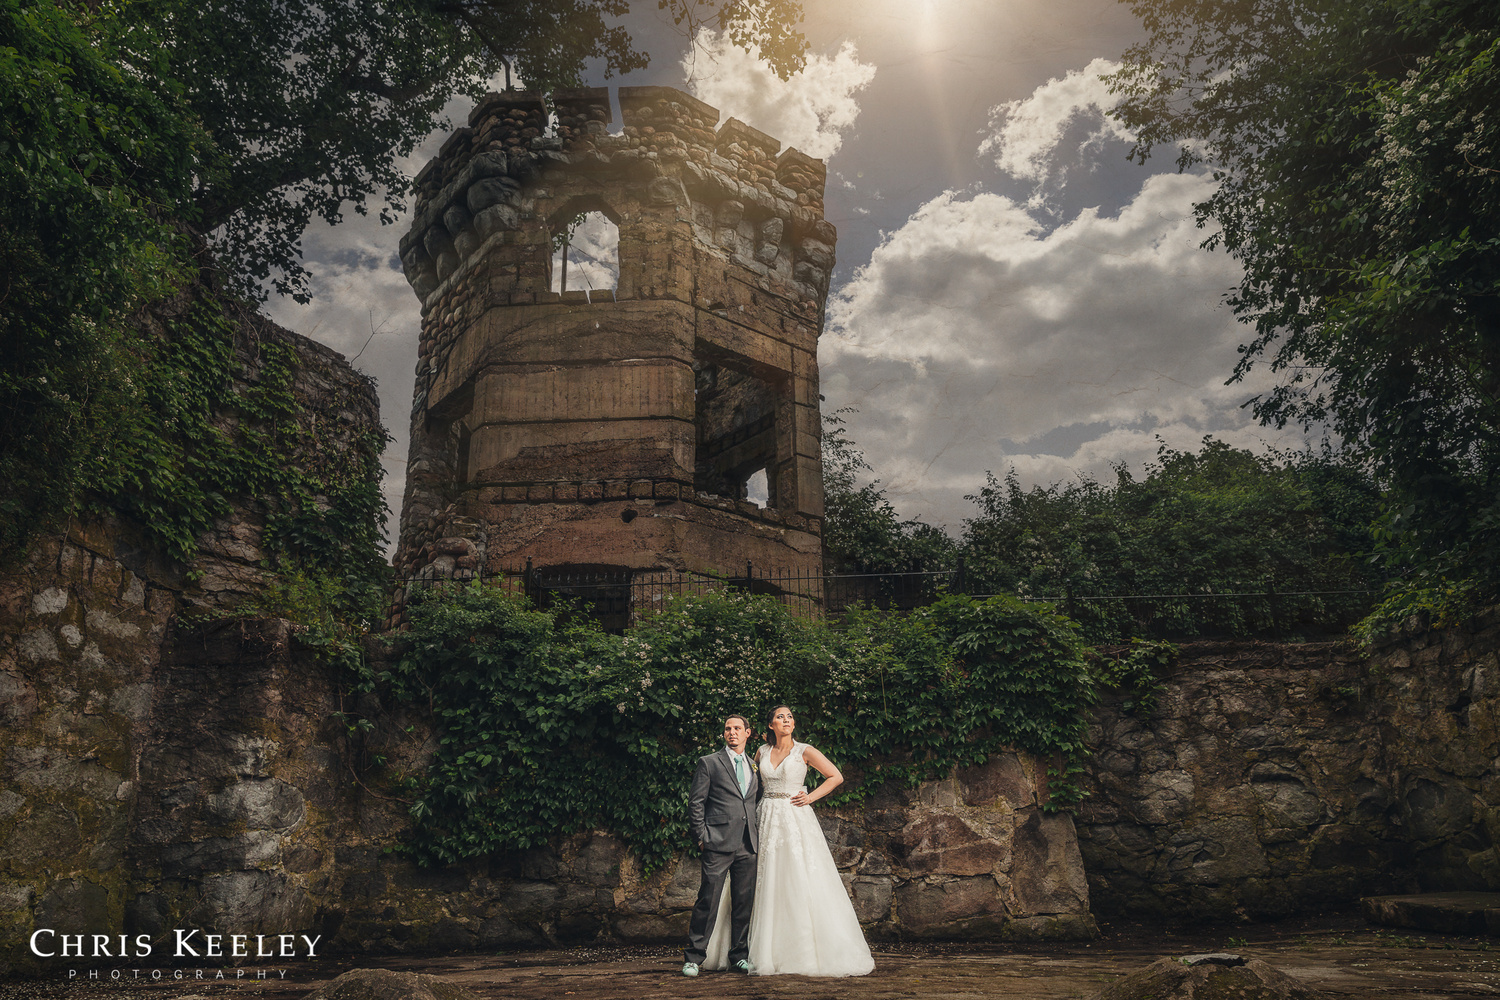 Castles by Chris Keeley